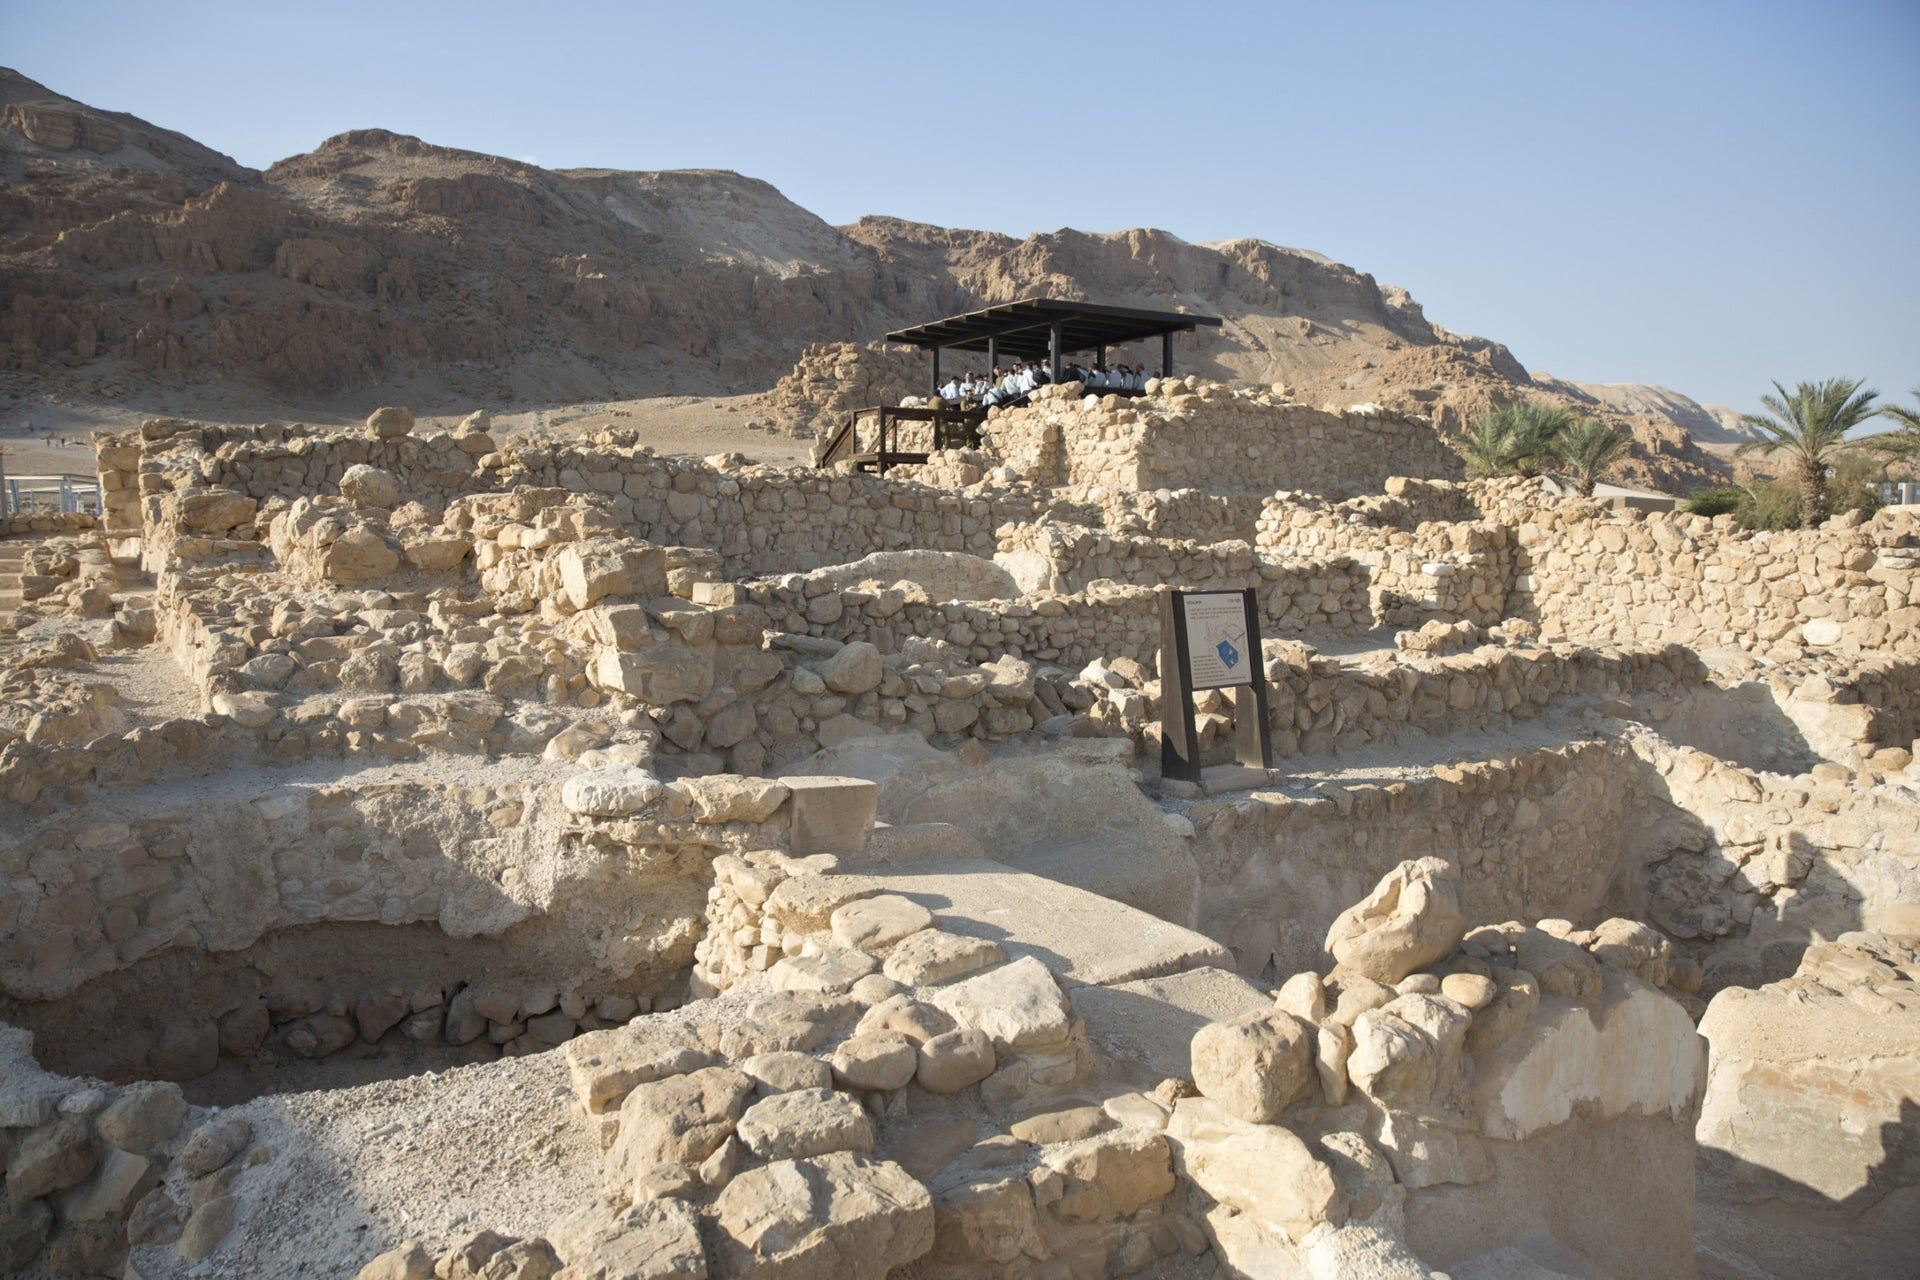 A view of Qumran.